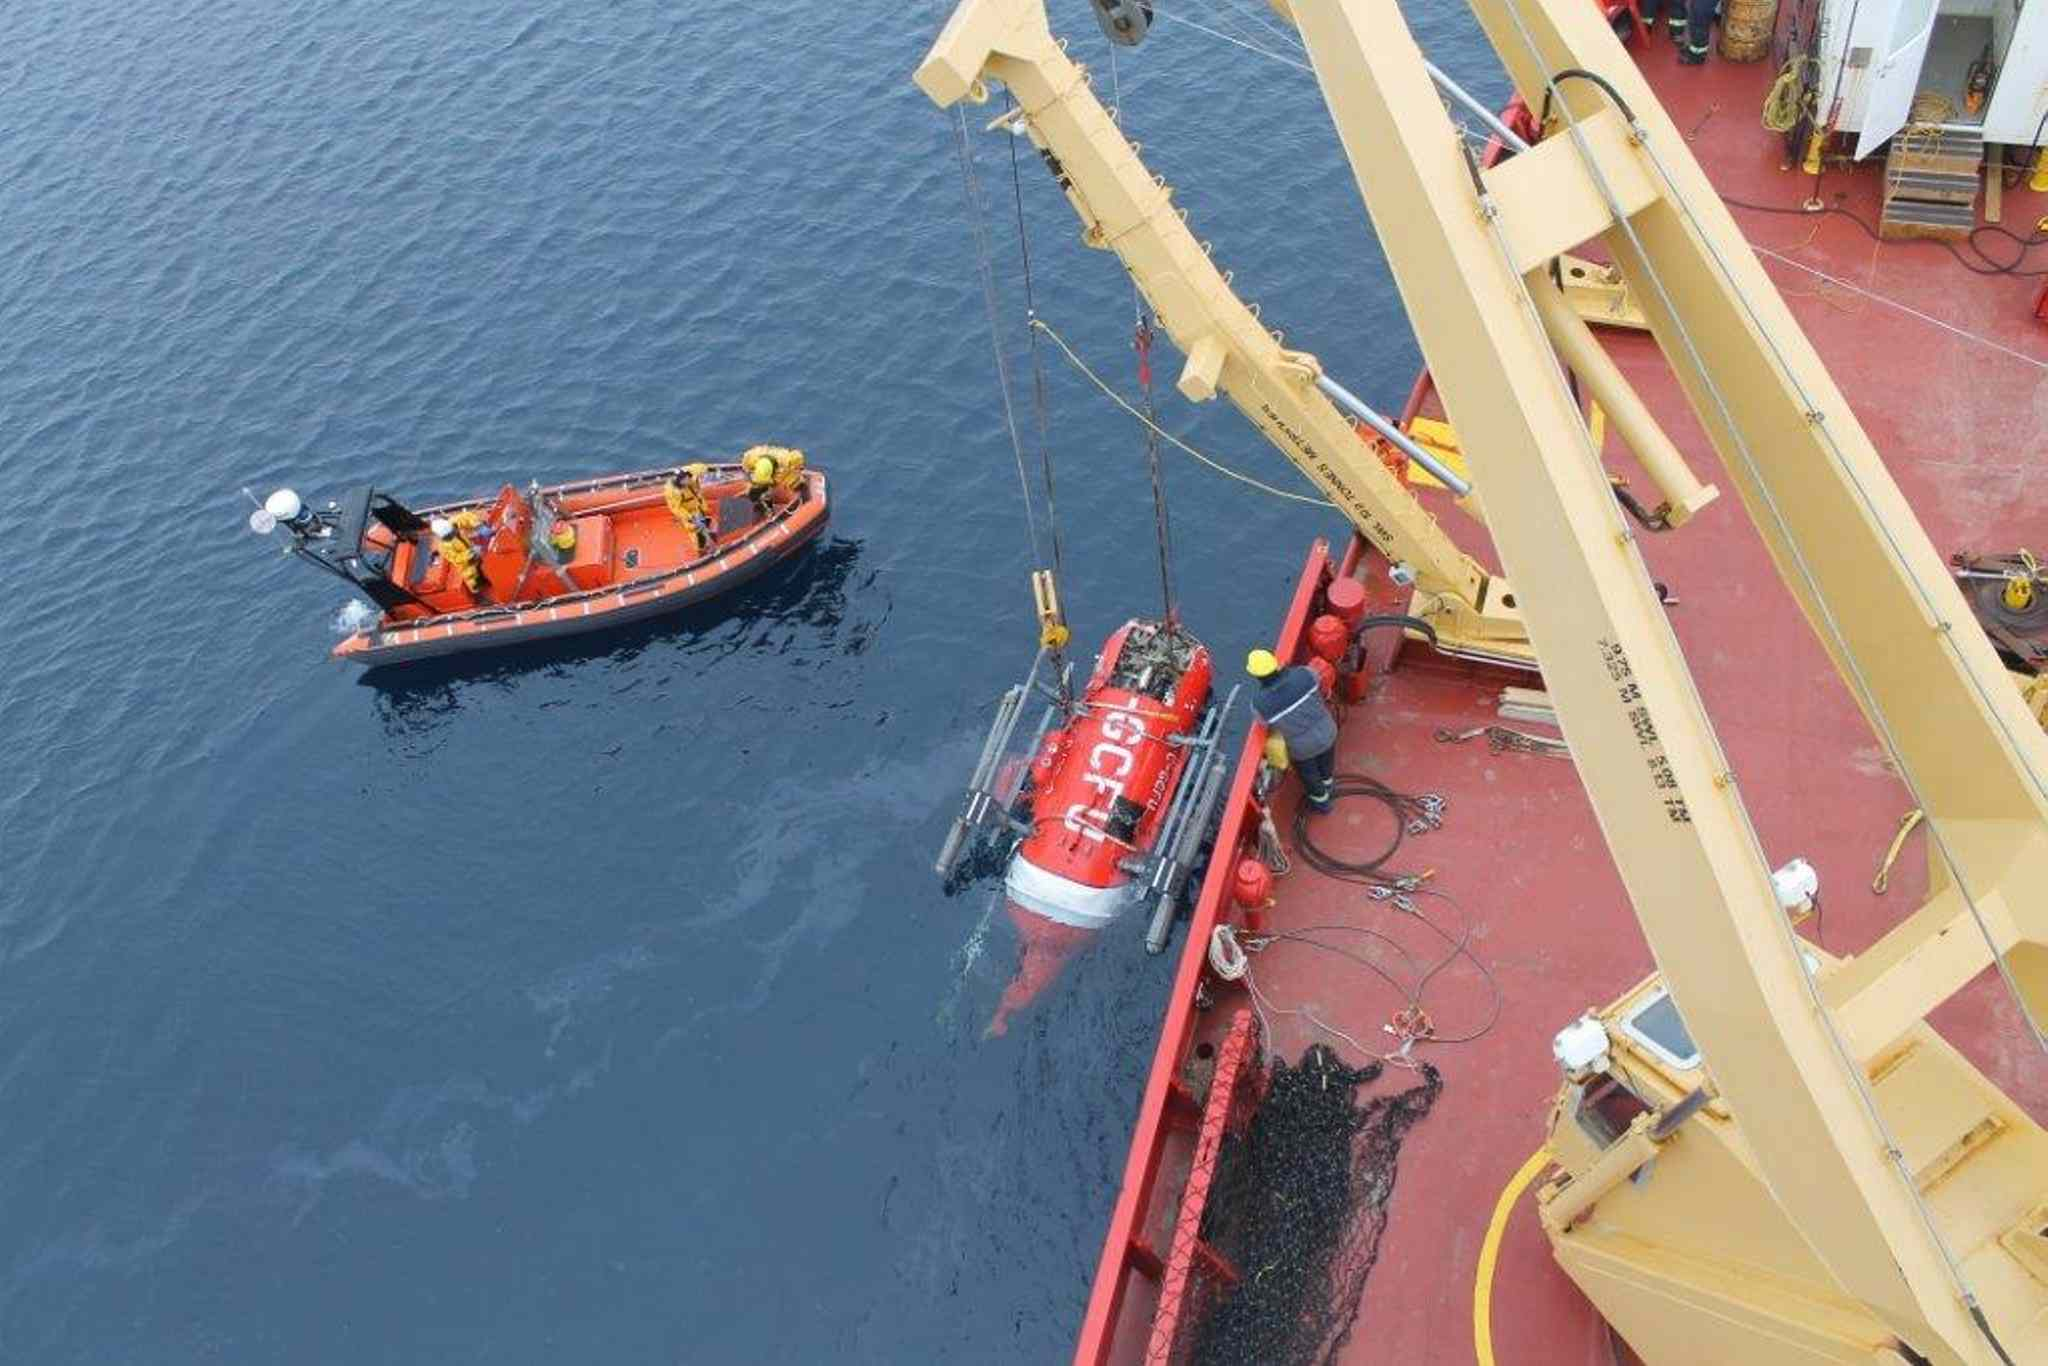 Recovery operation of the sunken Canadian Coast Guard helicopter in the M'Clure Strait, Northwest Territories